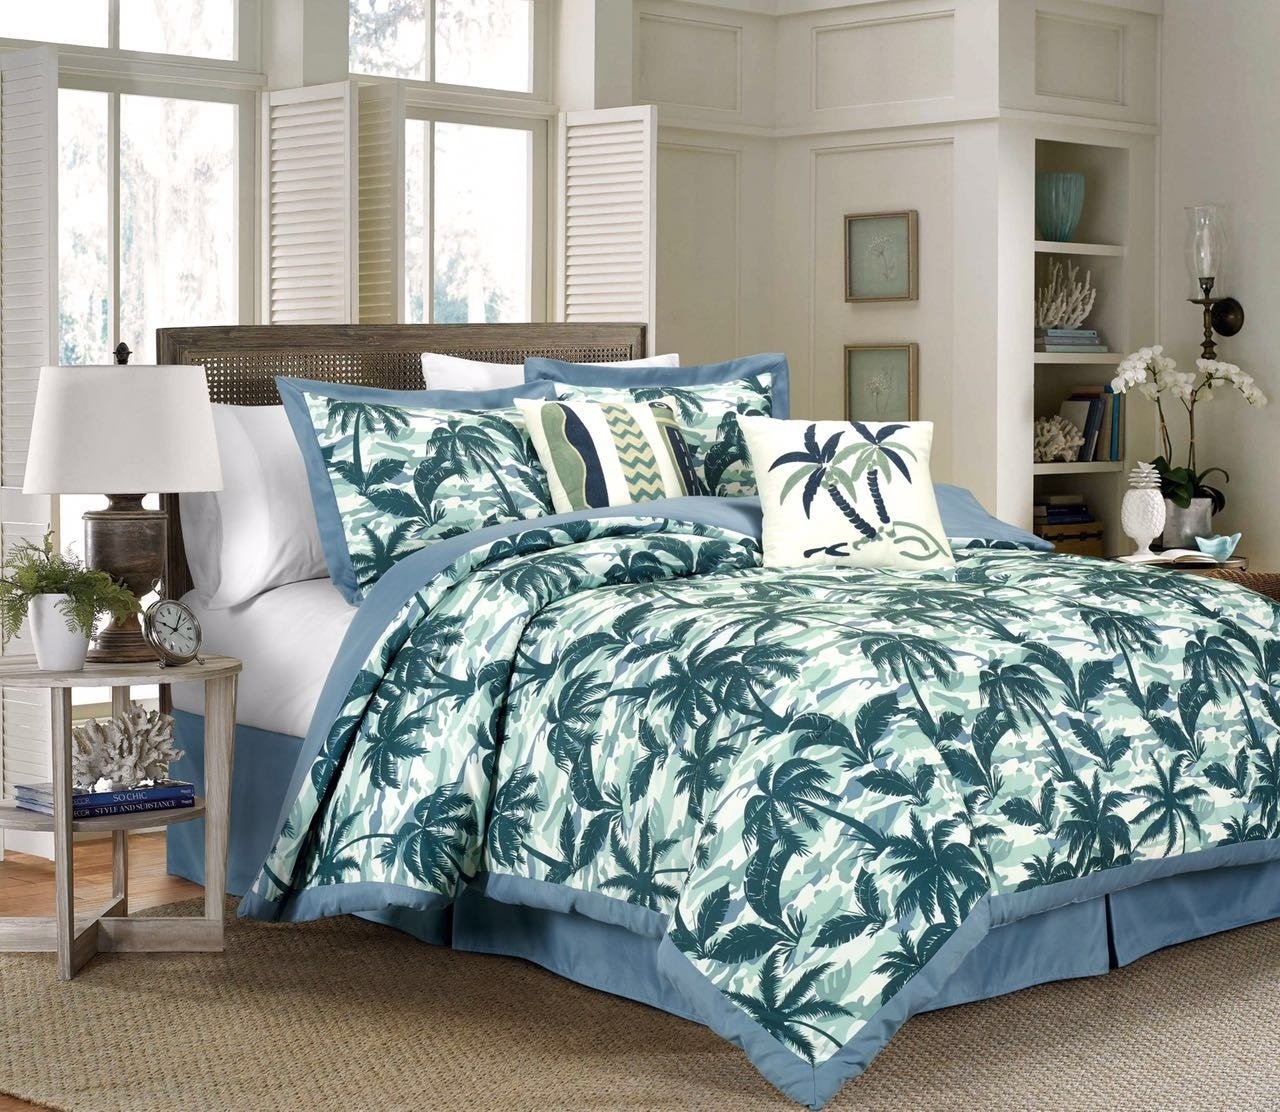 Chezmoi Collection Kona 6-Piece Tropical Palm Tree Surfboards Camouflage Bedding Comforter Set Queen, Blue